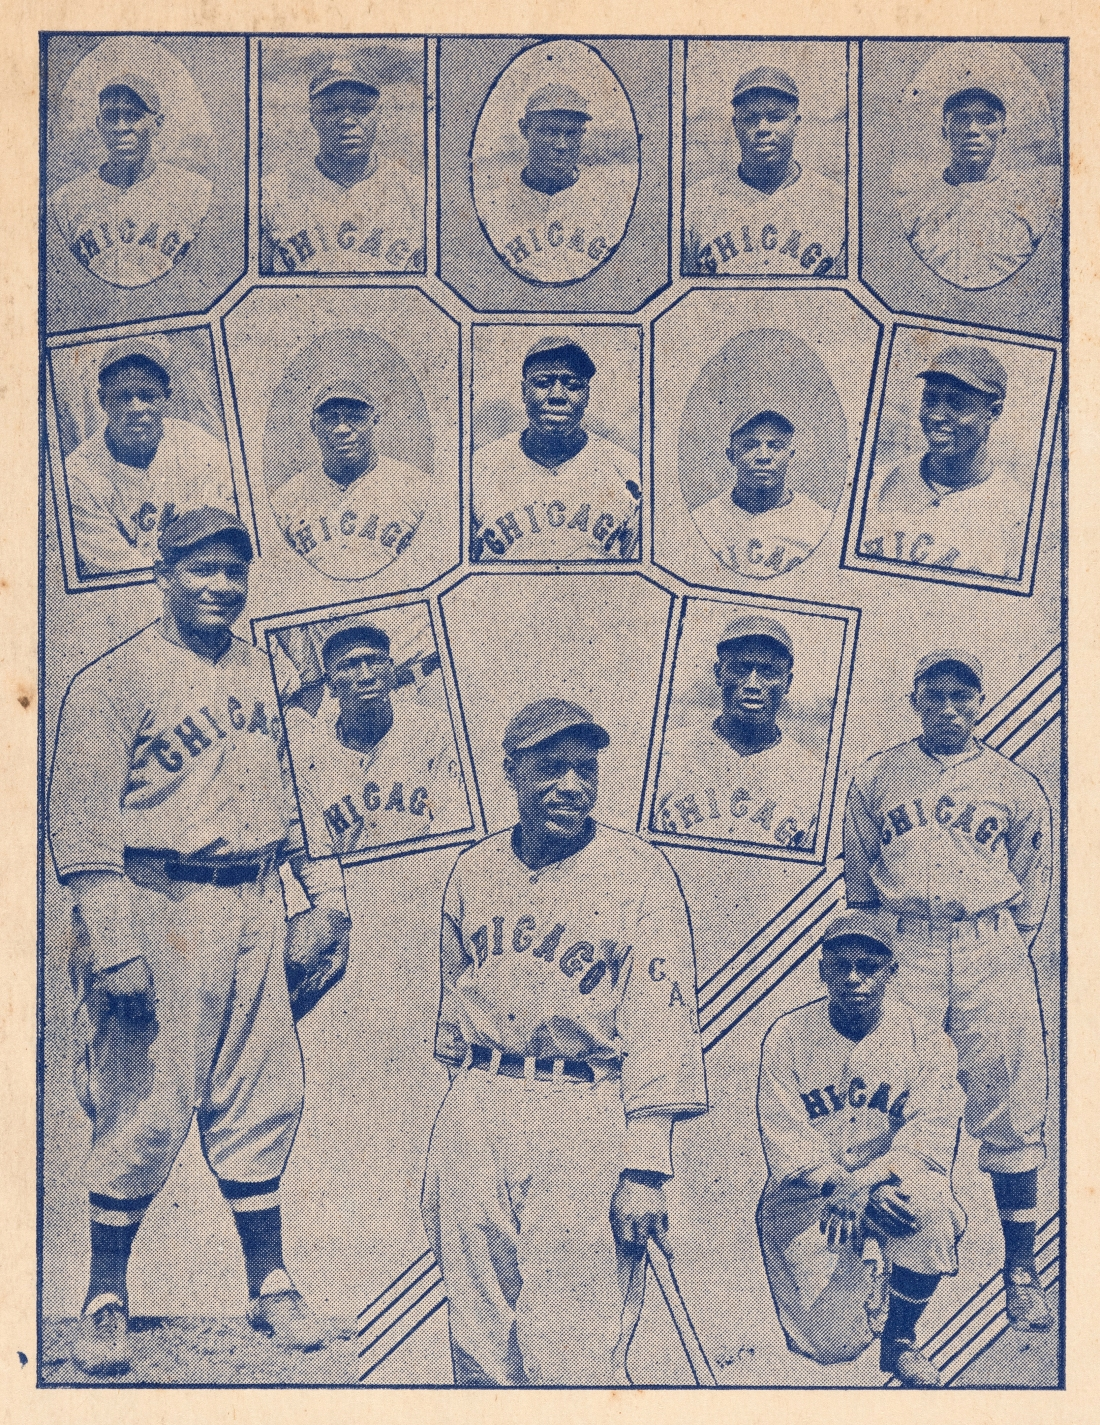 The Chicago American Giants team from the 1935 Negro League Baseball broadside.